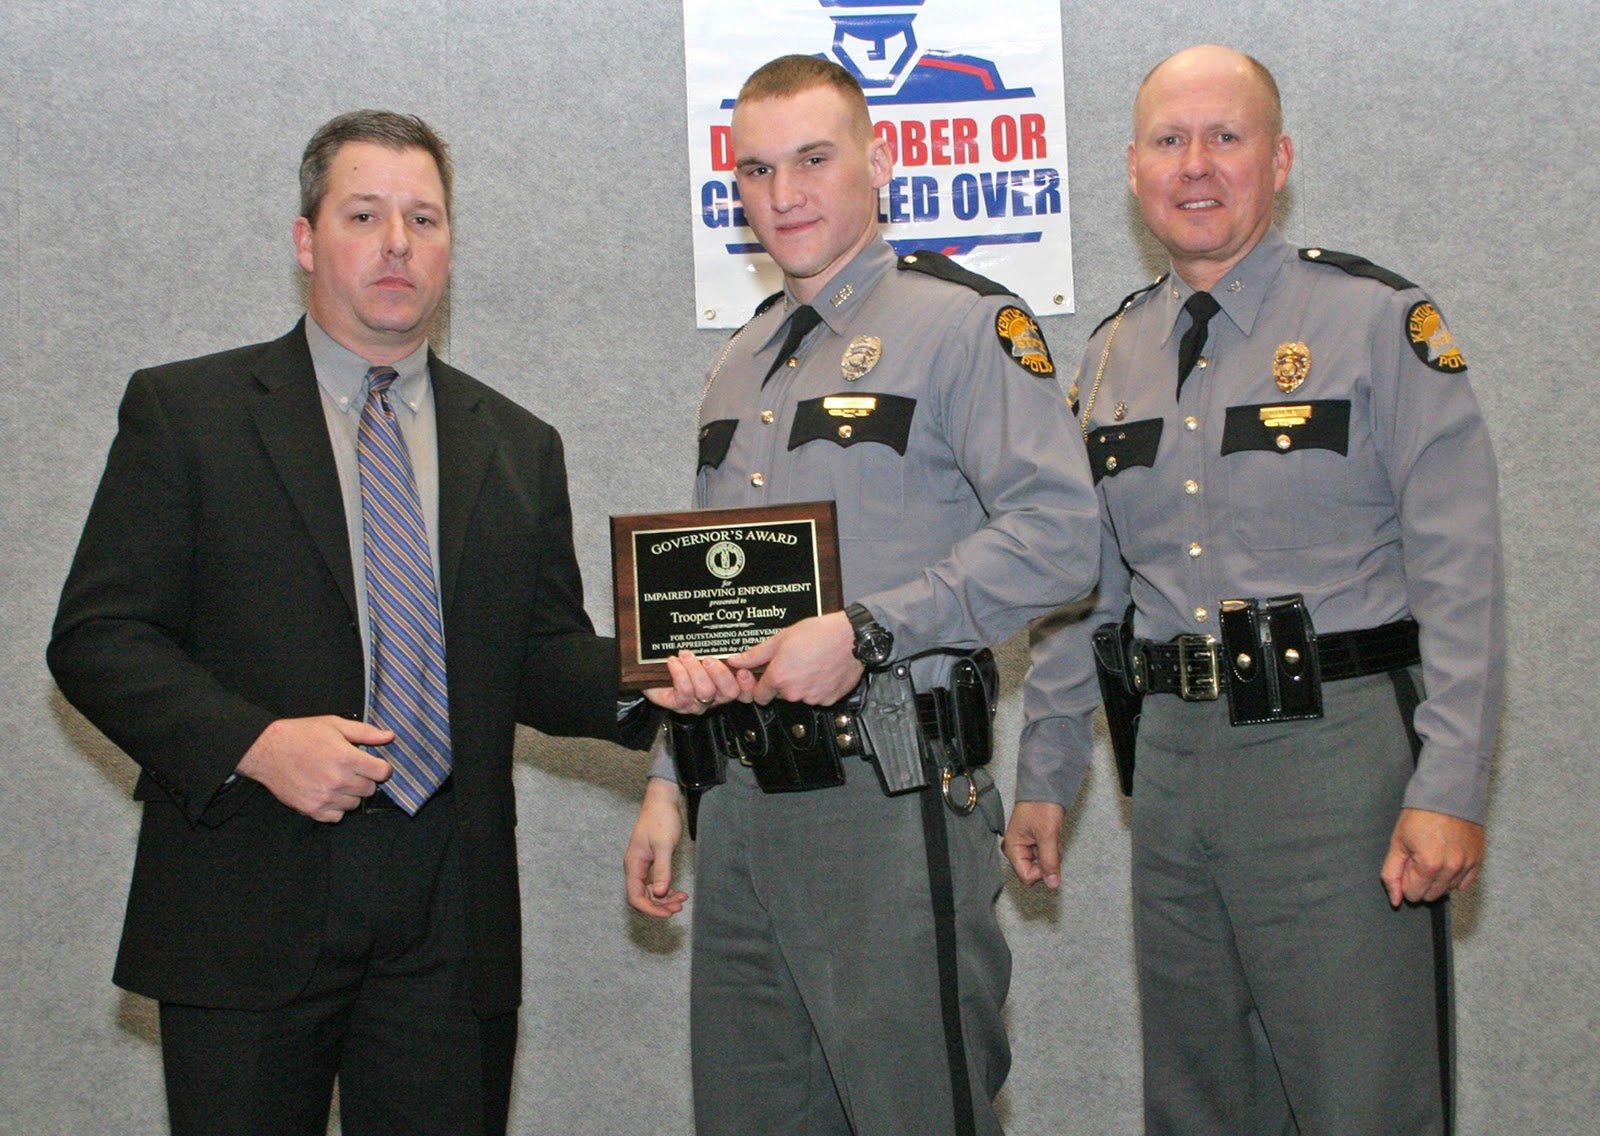 John ridley bowling green kentucky - Pictured With Trooper Hamby Center Is Kentucky Office Of Highway Safety Director Bill Bell Left And Kentucky State Police Commissioner Rodney Brewer